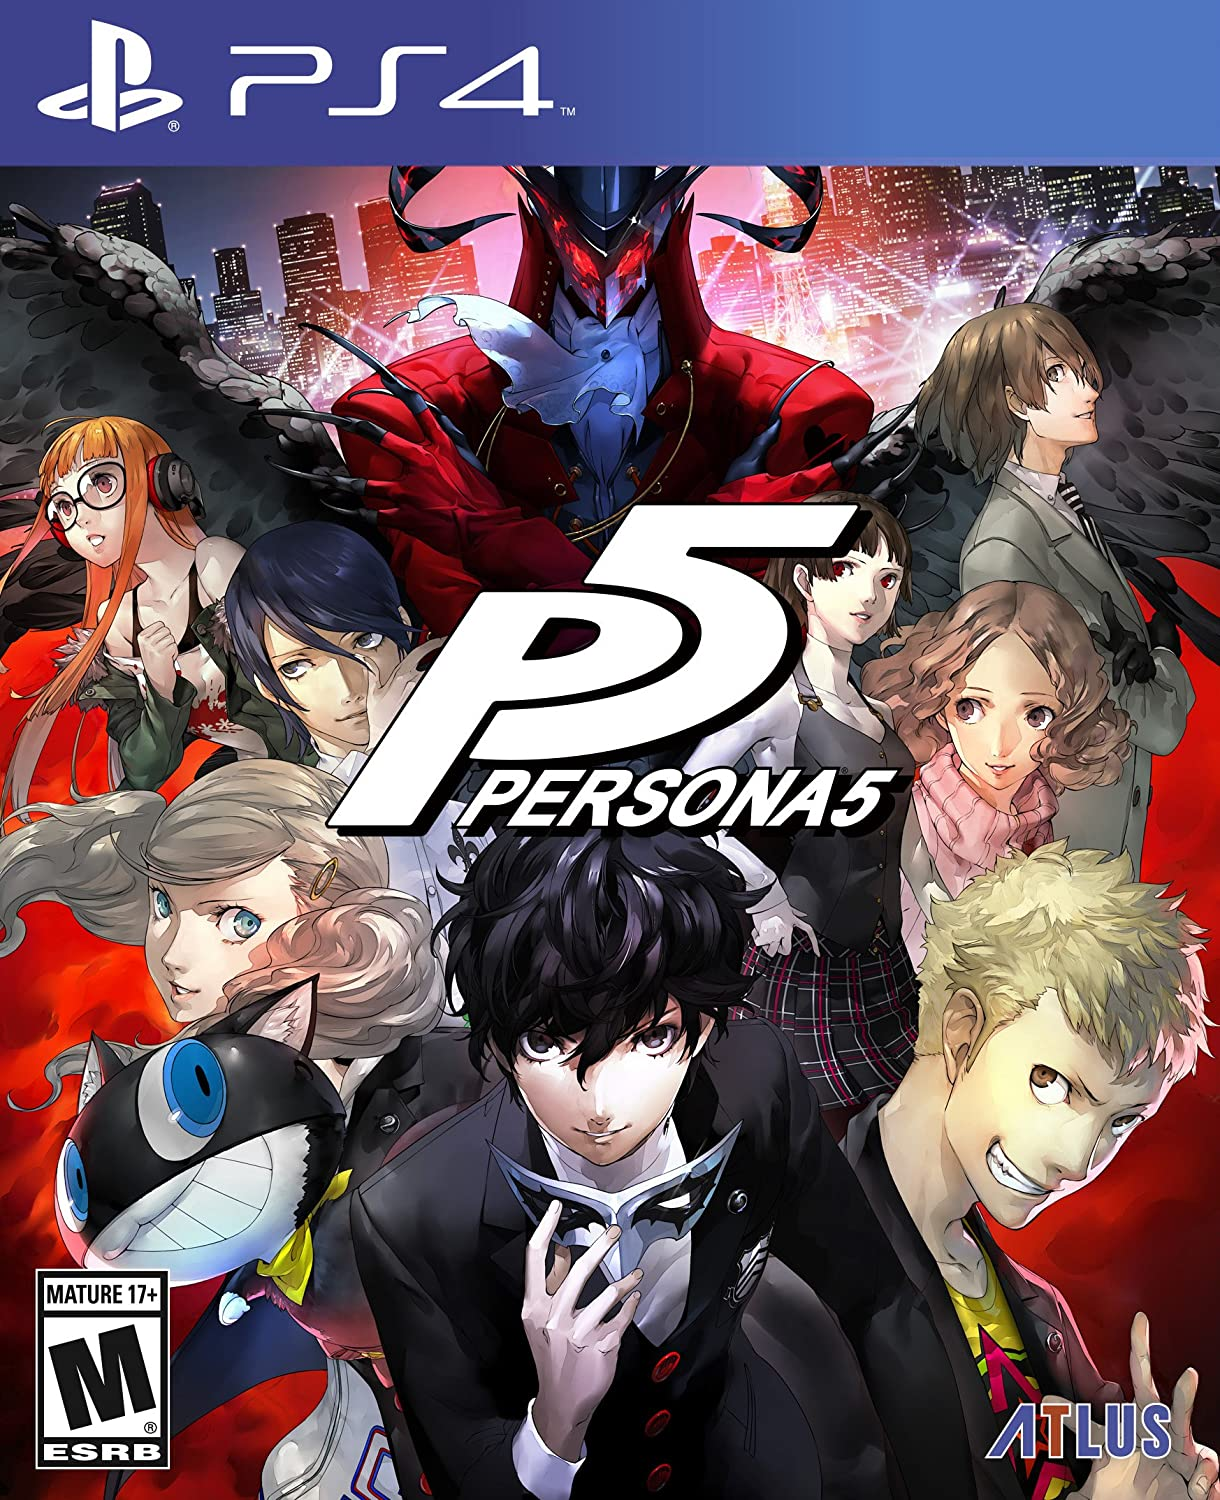 Buy persona 5 standard edition playstation 4 online at low prices in india atlus video games amazon in